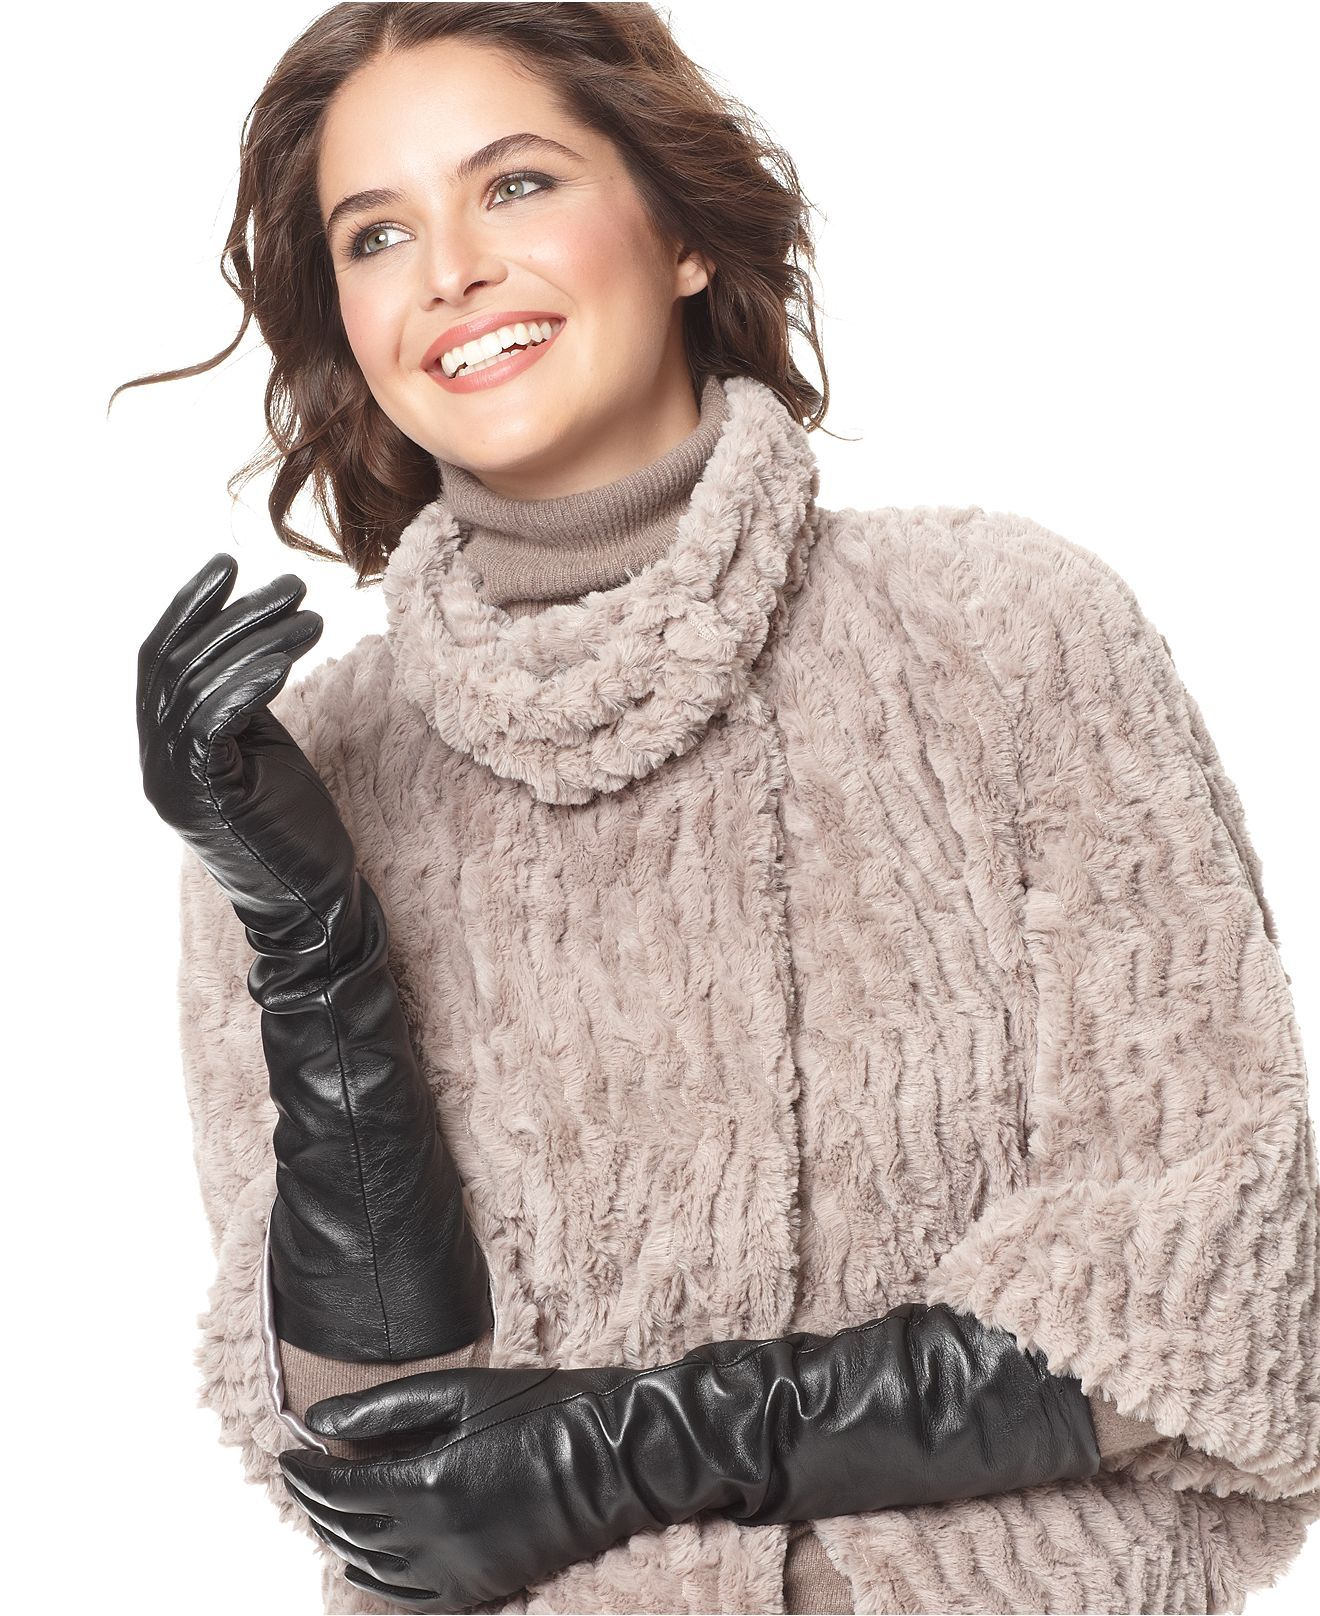 Leather driving gloves macys - Charter Club Gloves Long Leather Gloves Scarves Wraps Handbags Accessories Macy S